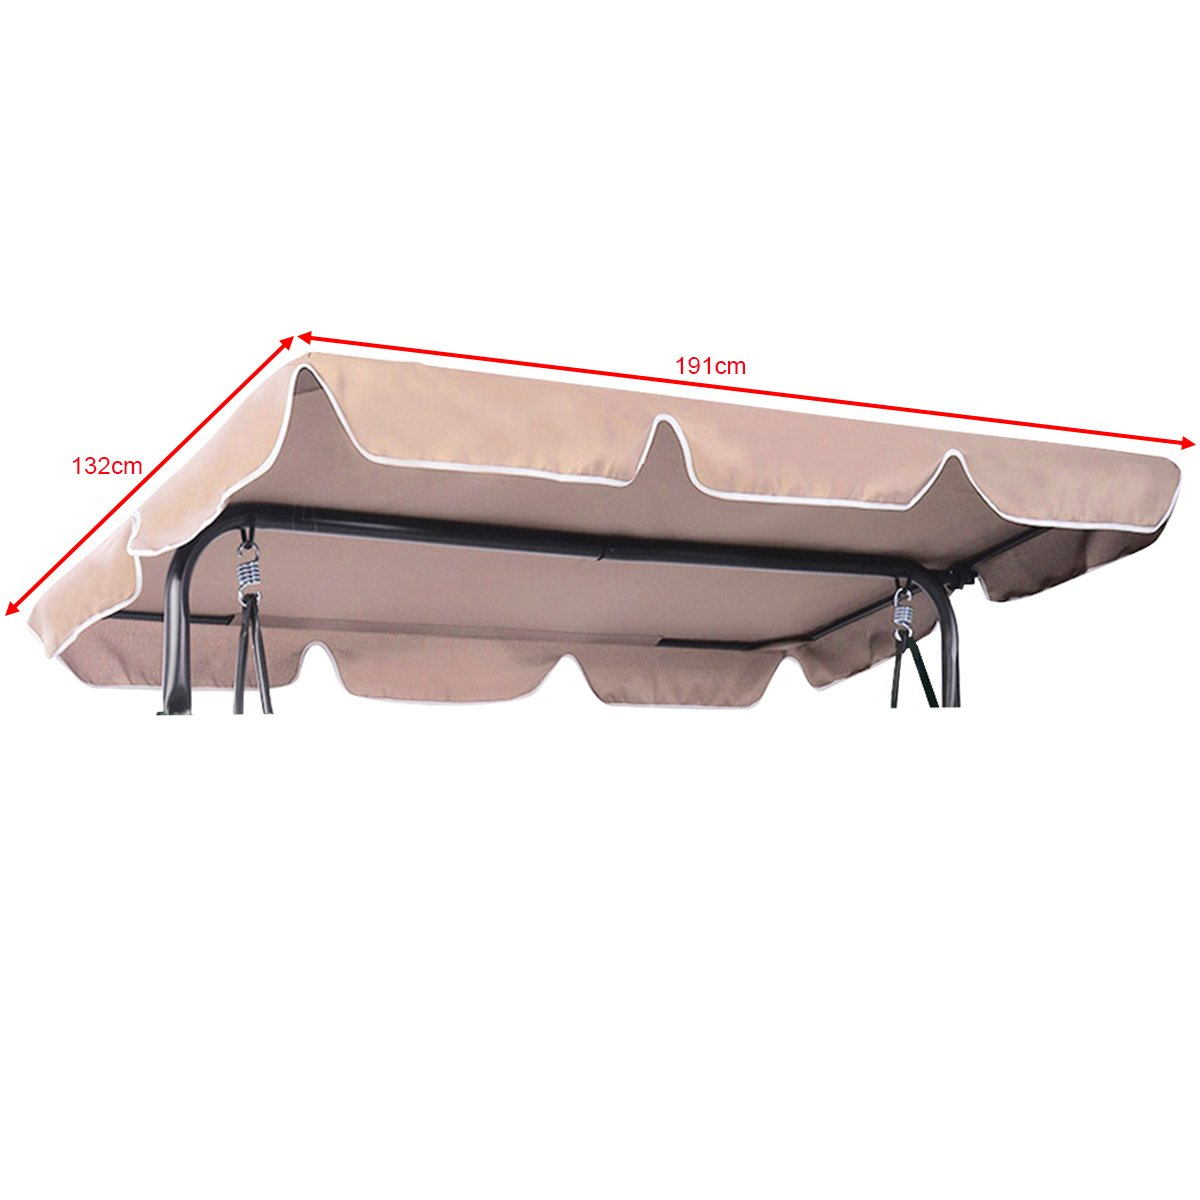 CASART Beige Replacement Canopy 2 & 3 Seater Swing Chair Top Hammock Cover for Garden Patio Outdoor (110 x 200cm)